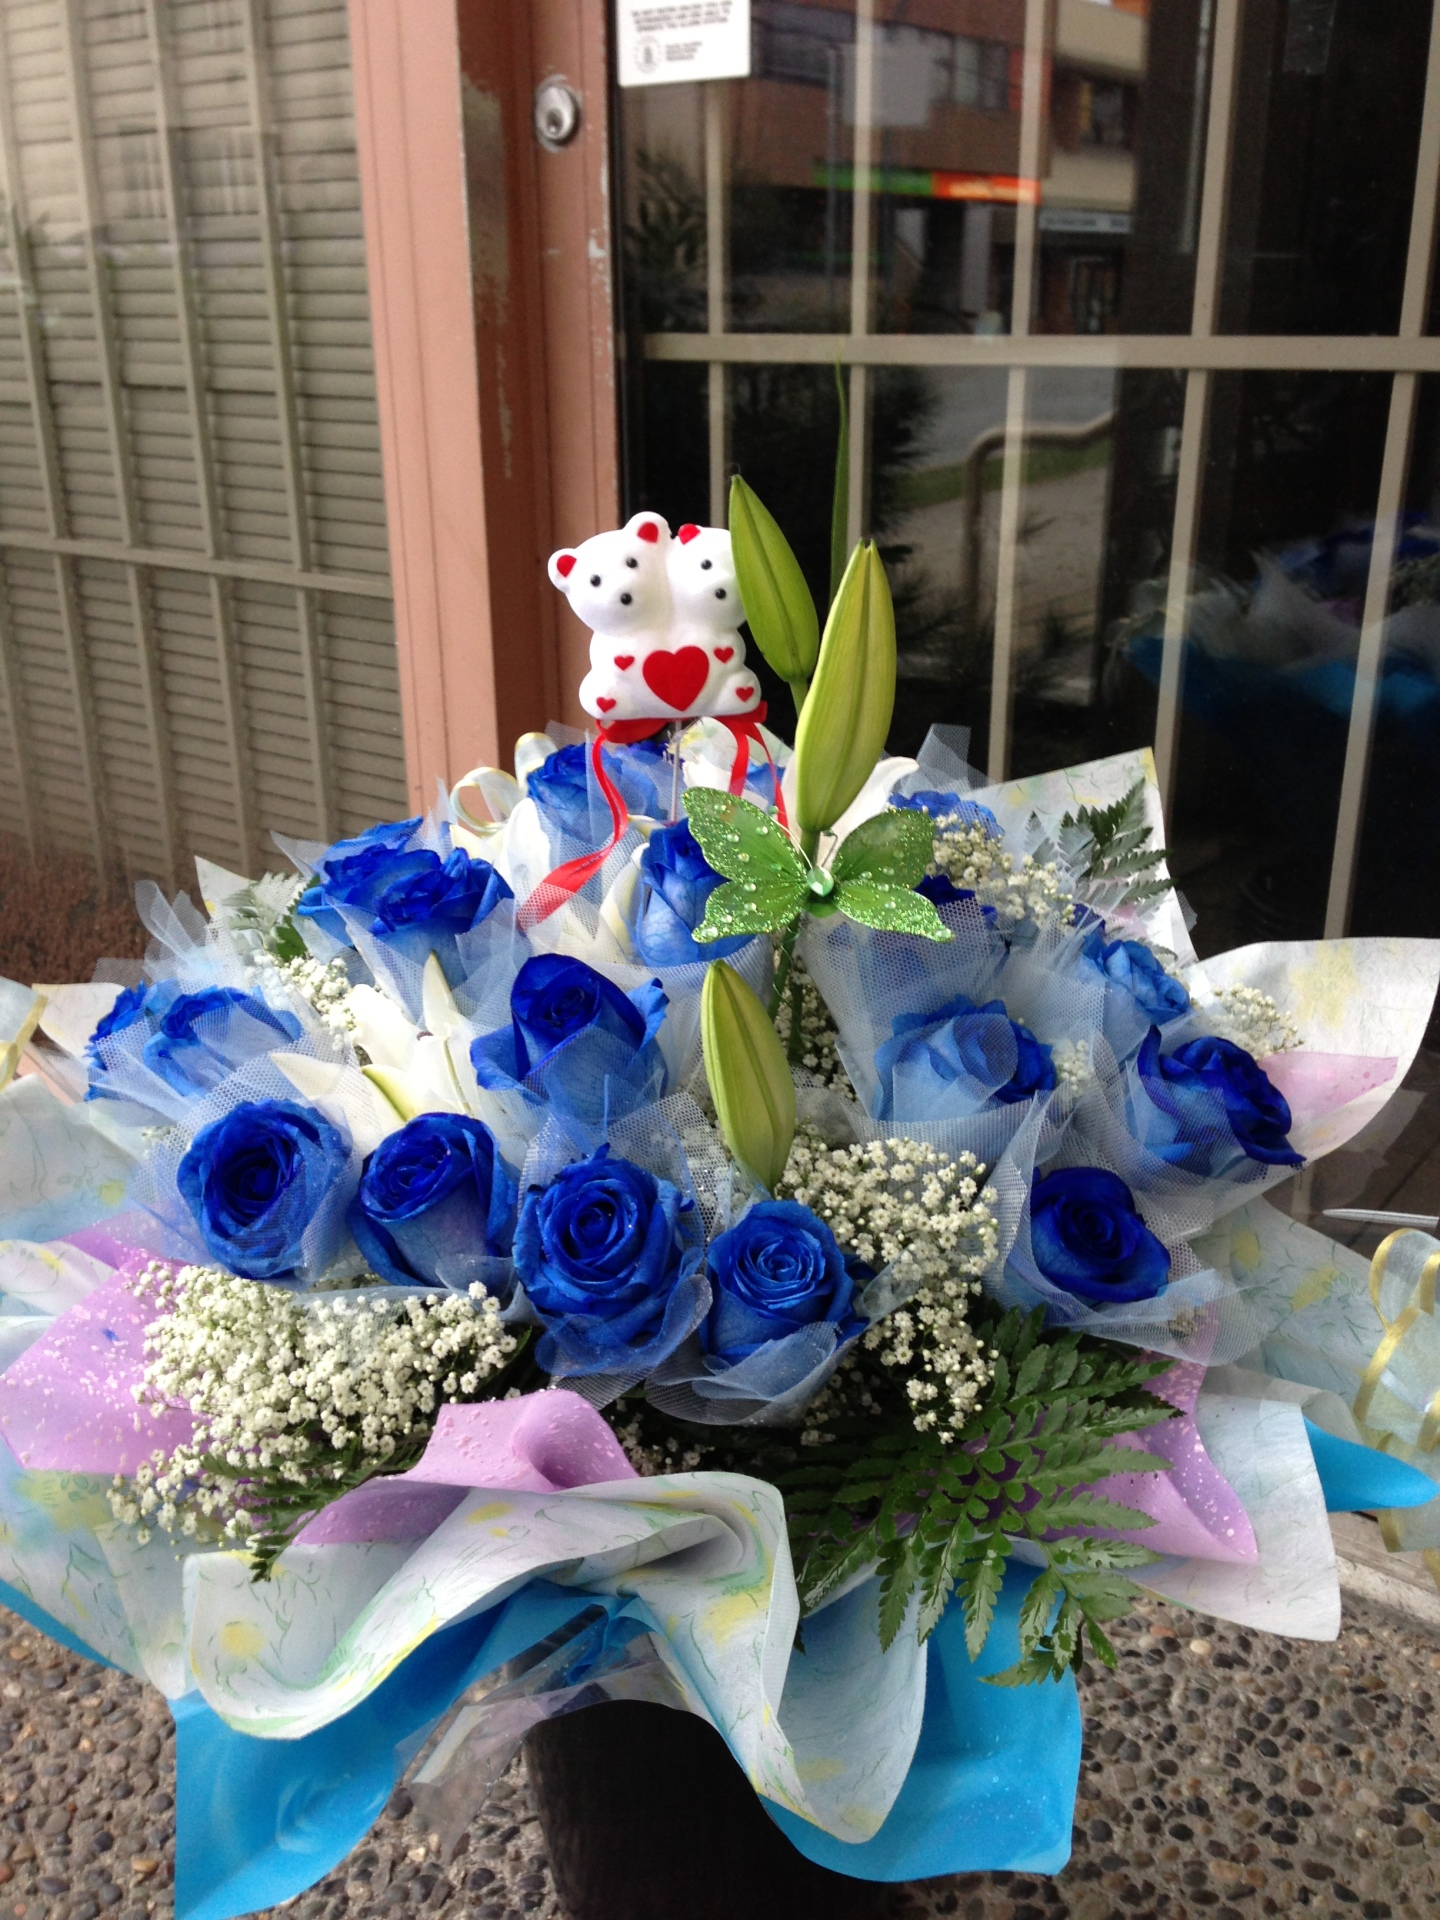 Blue Roses Hong Kong style Bouquet